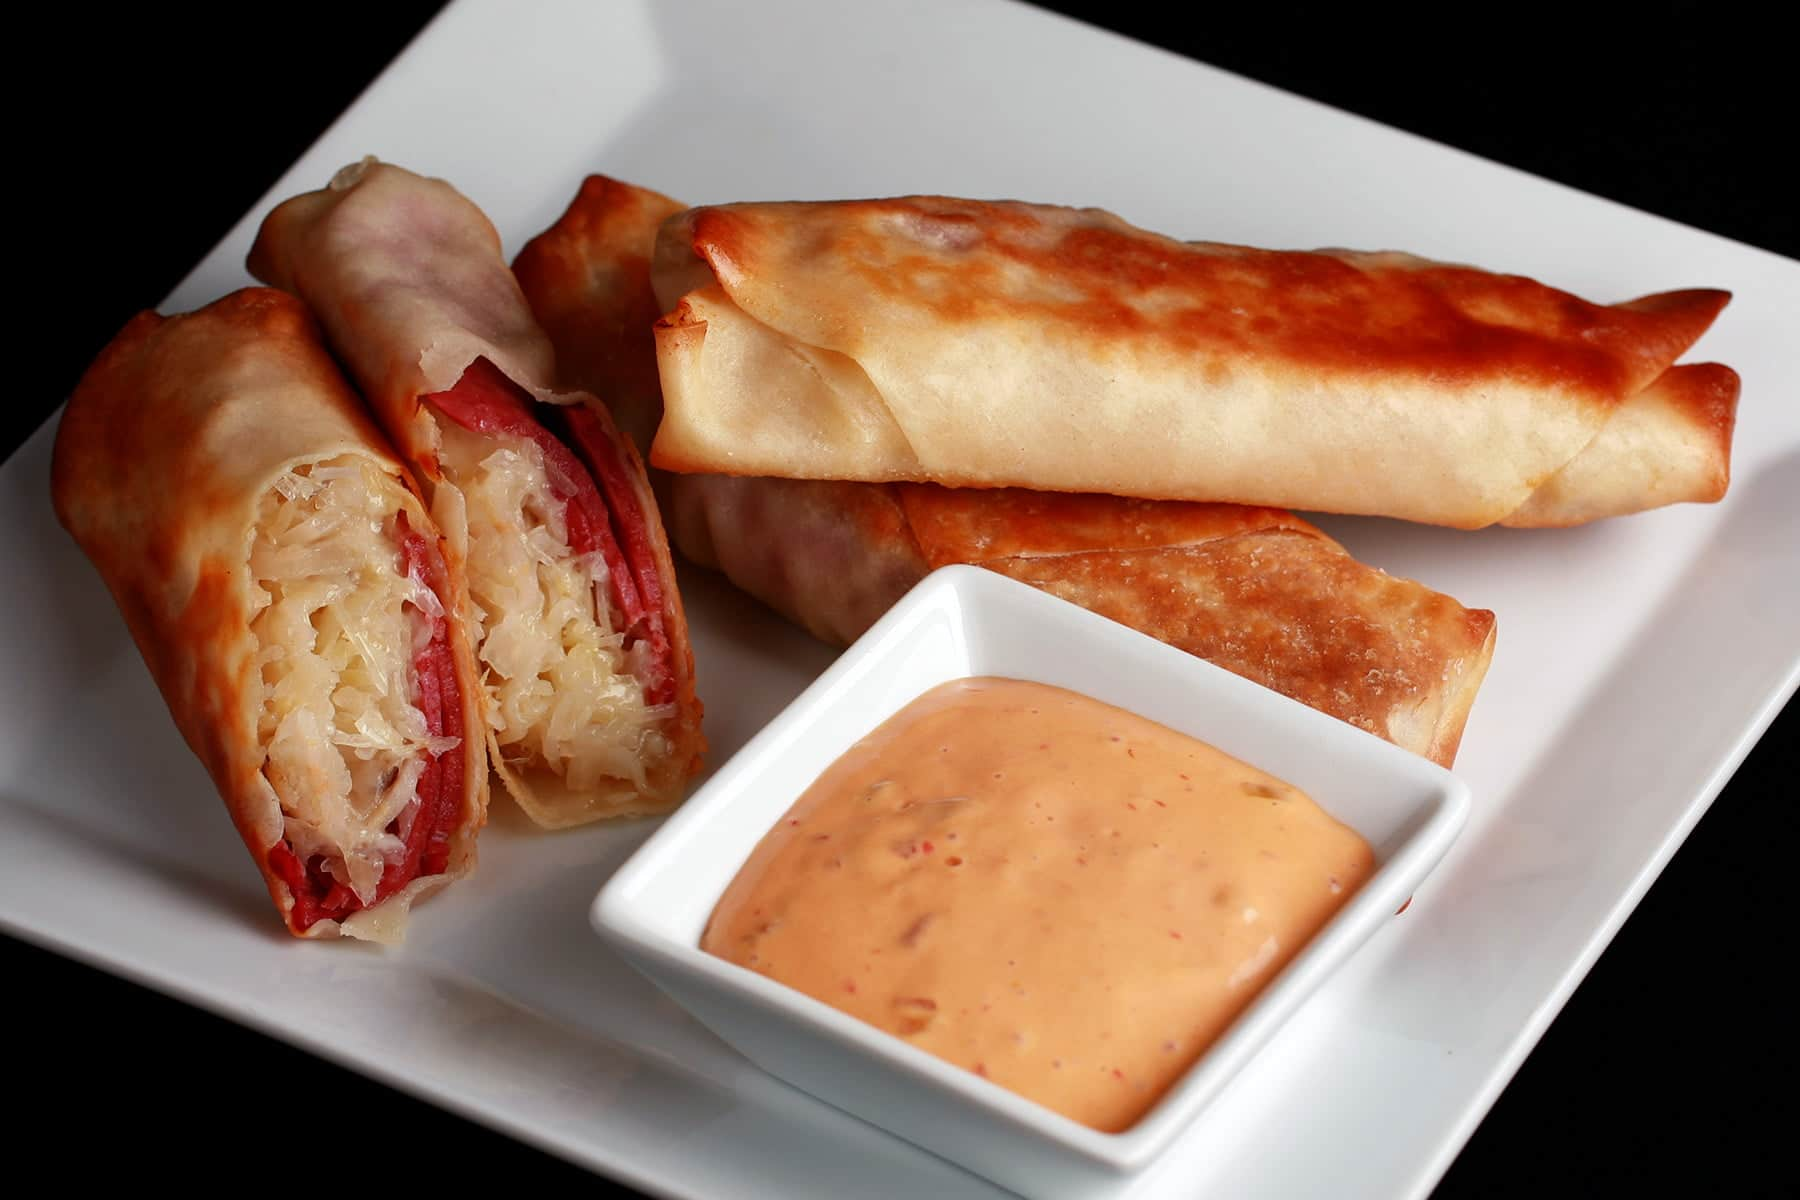 A white plate is piled with baked Reuben poppers, with one cut in half. There is a small bowl of thousand island dressing on the plate, as well.